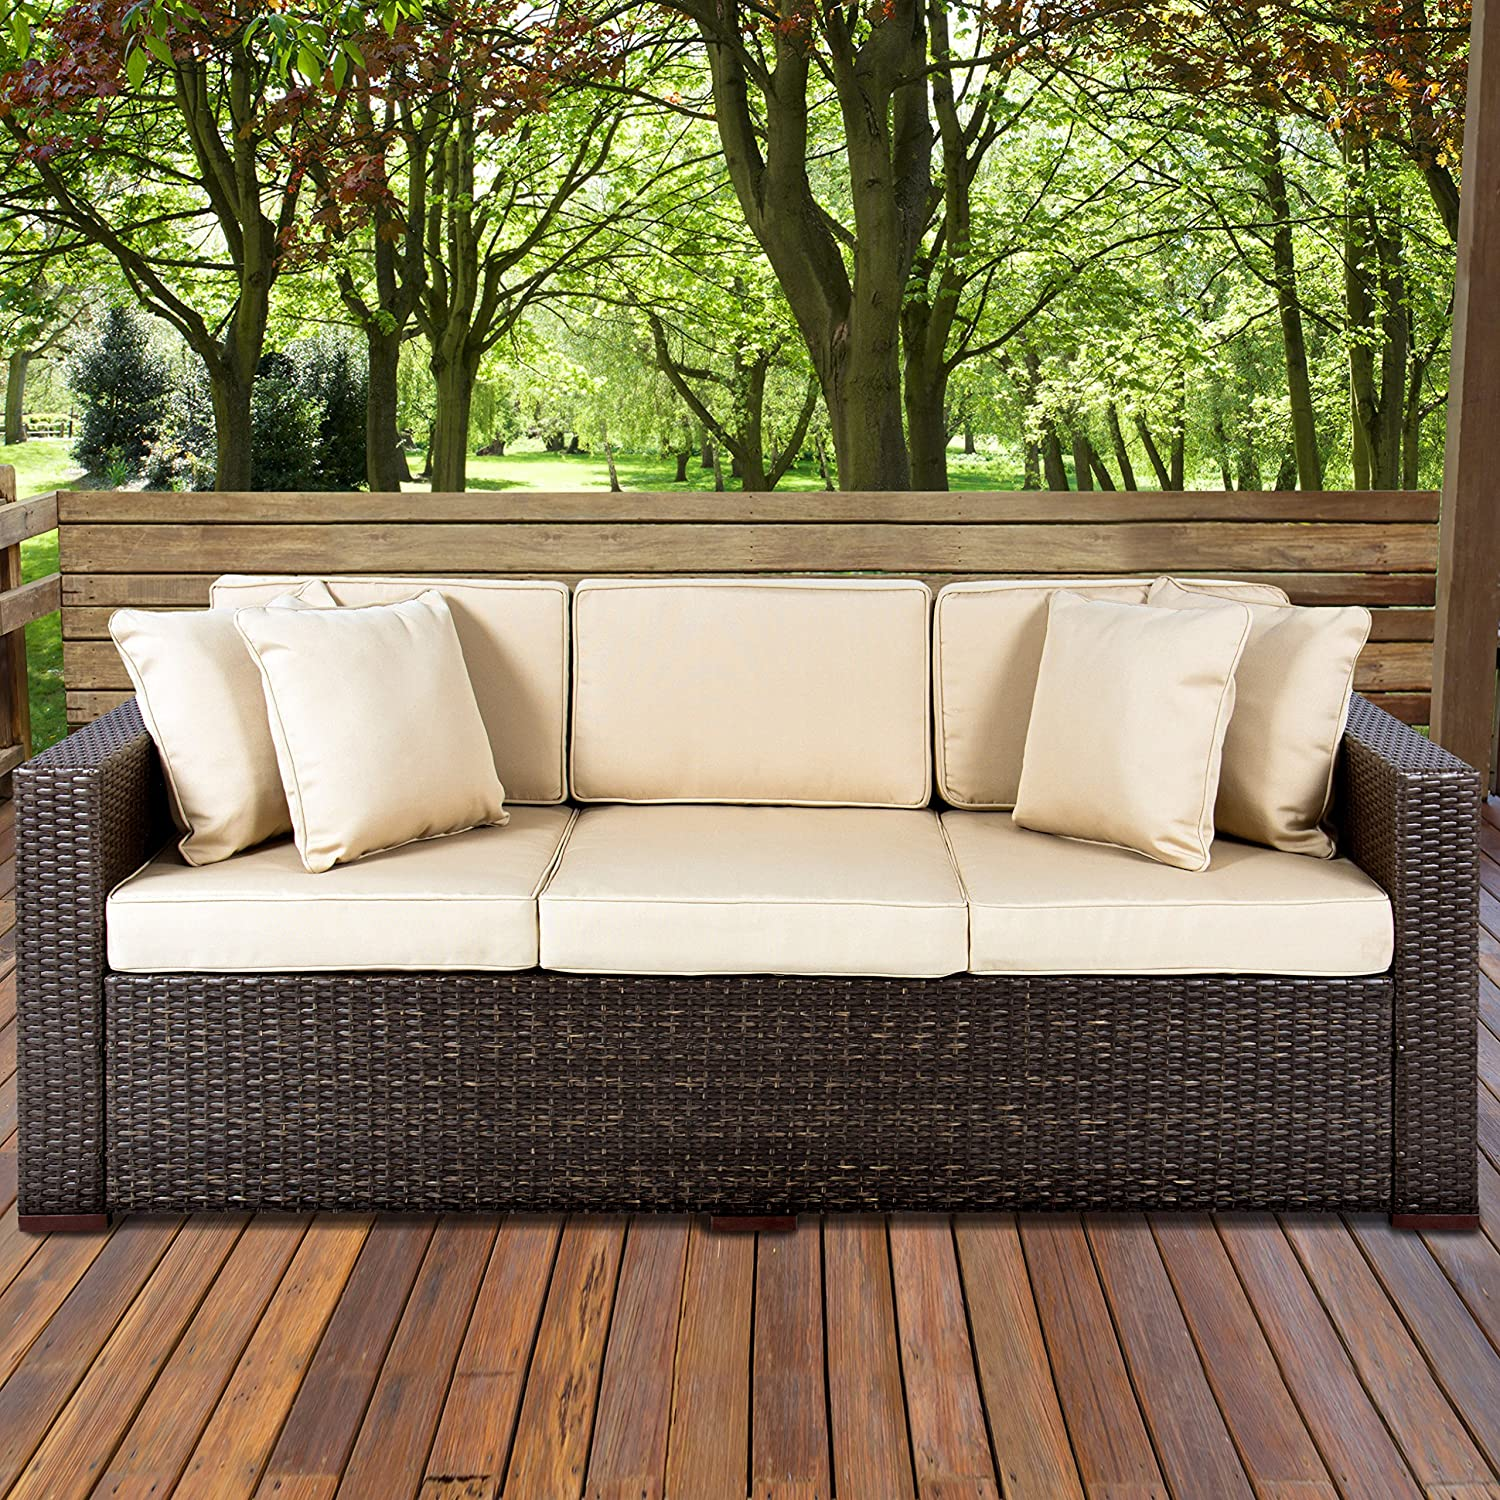 piece with wicker weather patio conversation p fabric sectional canyon ae outdoor all sunbrella sets